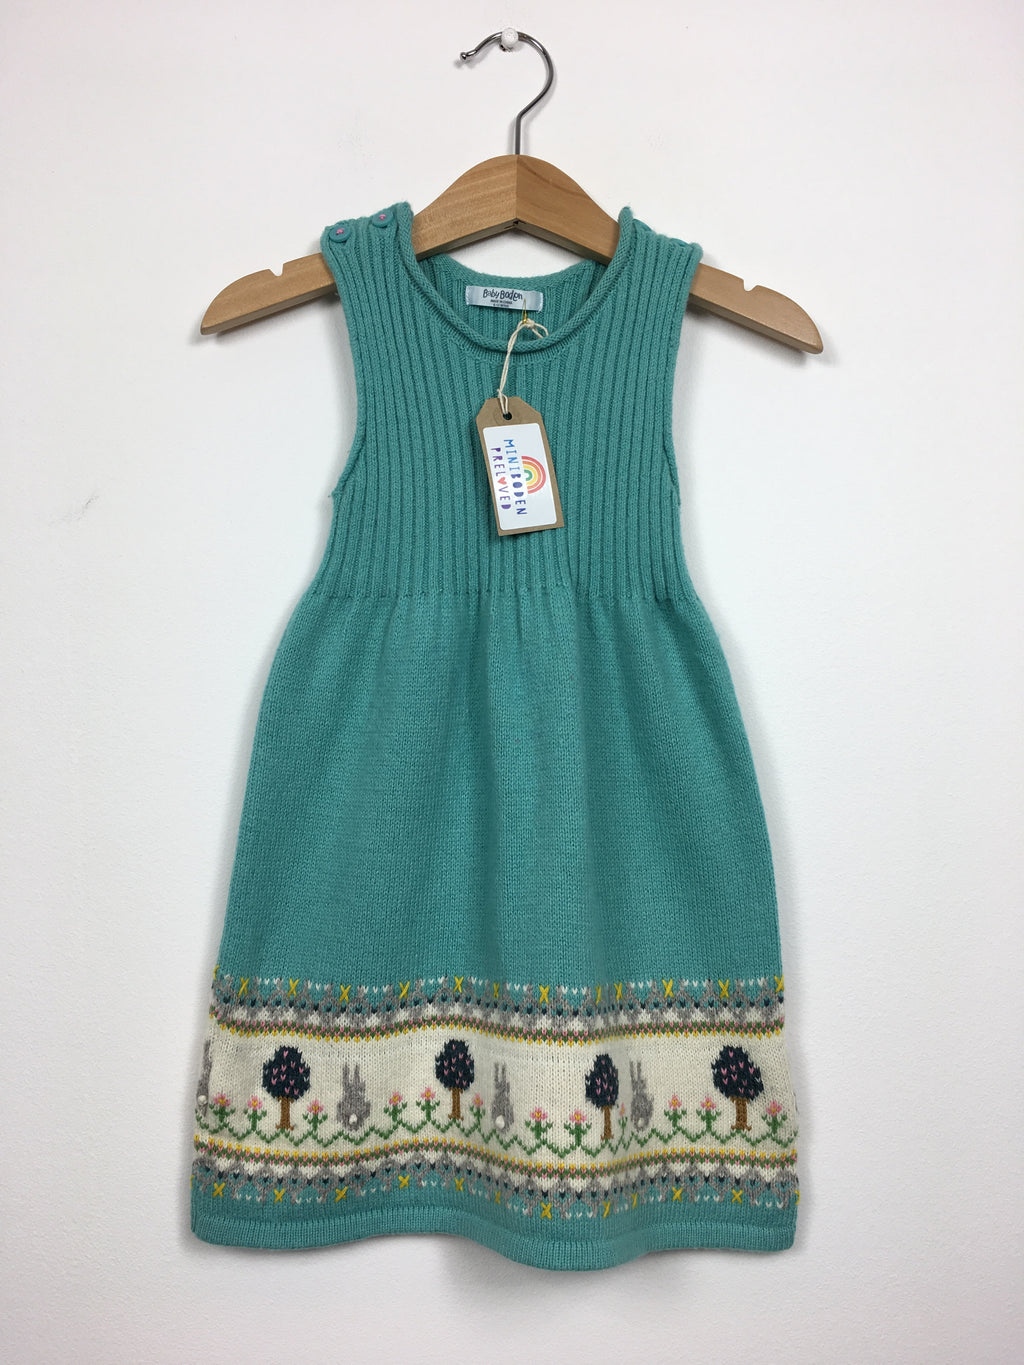 Rabbit Knitted Teal Dress (6-12 Months)